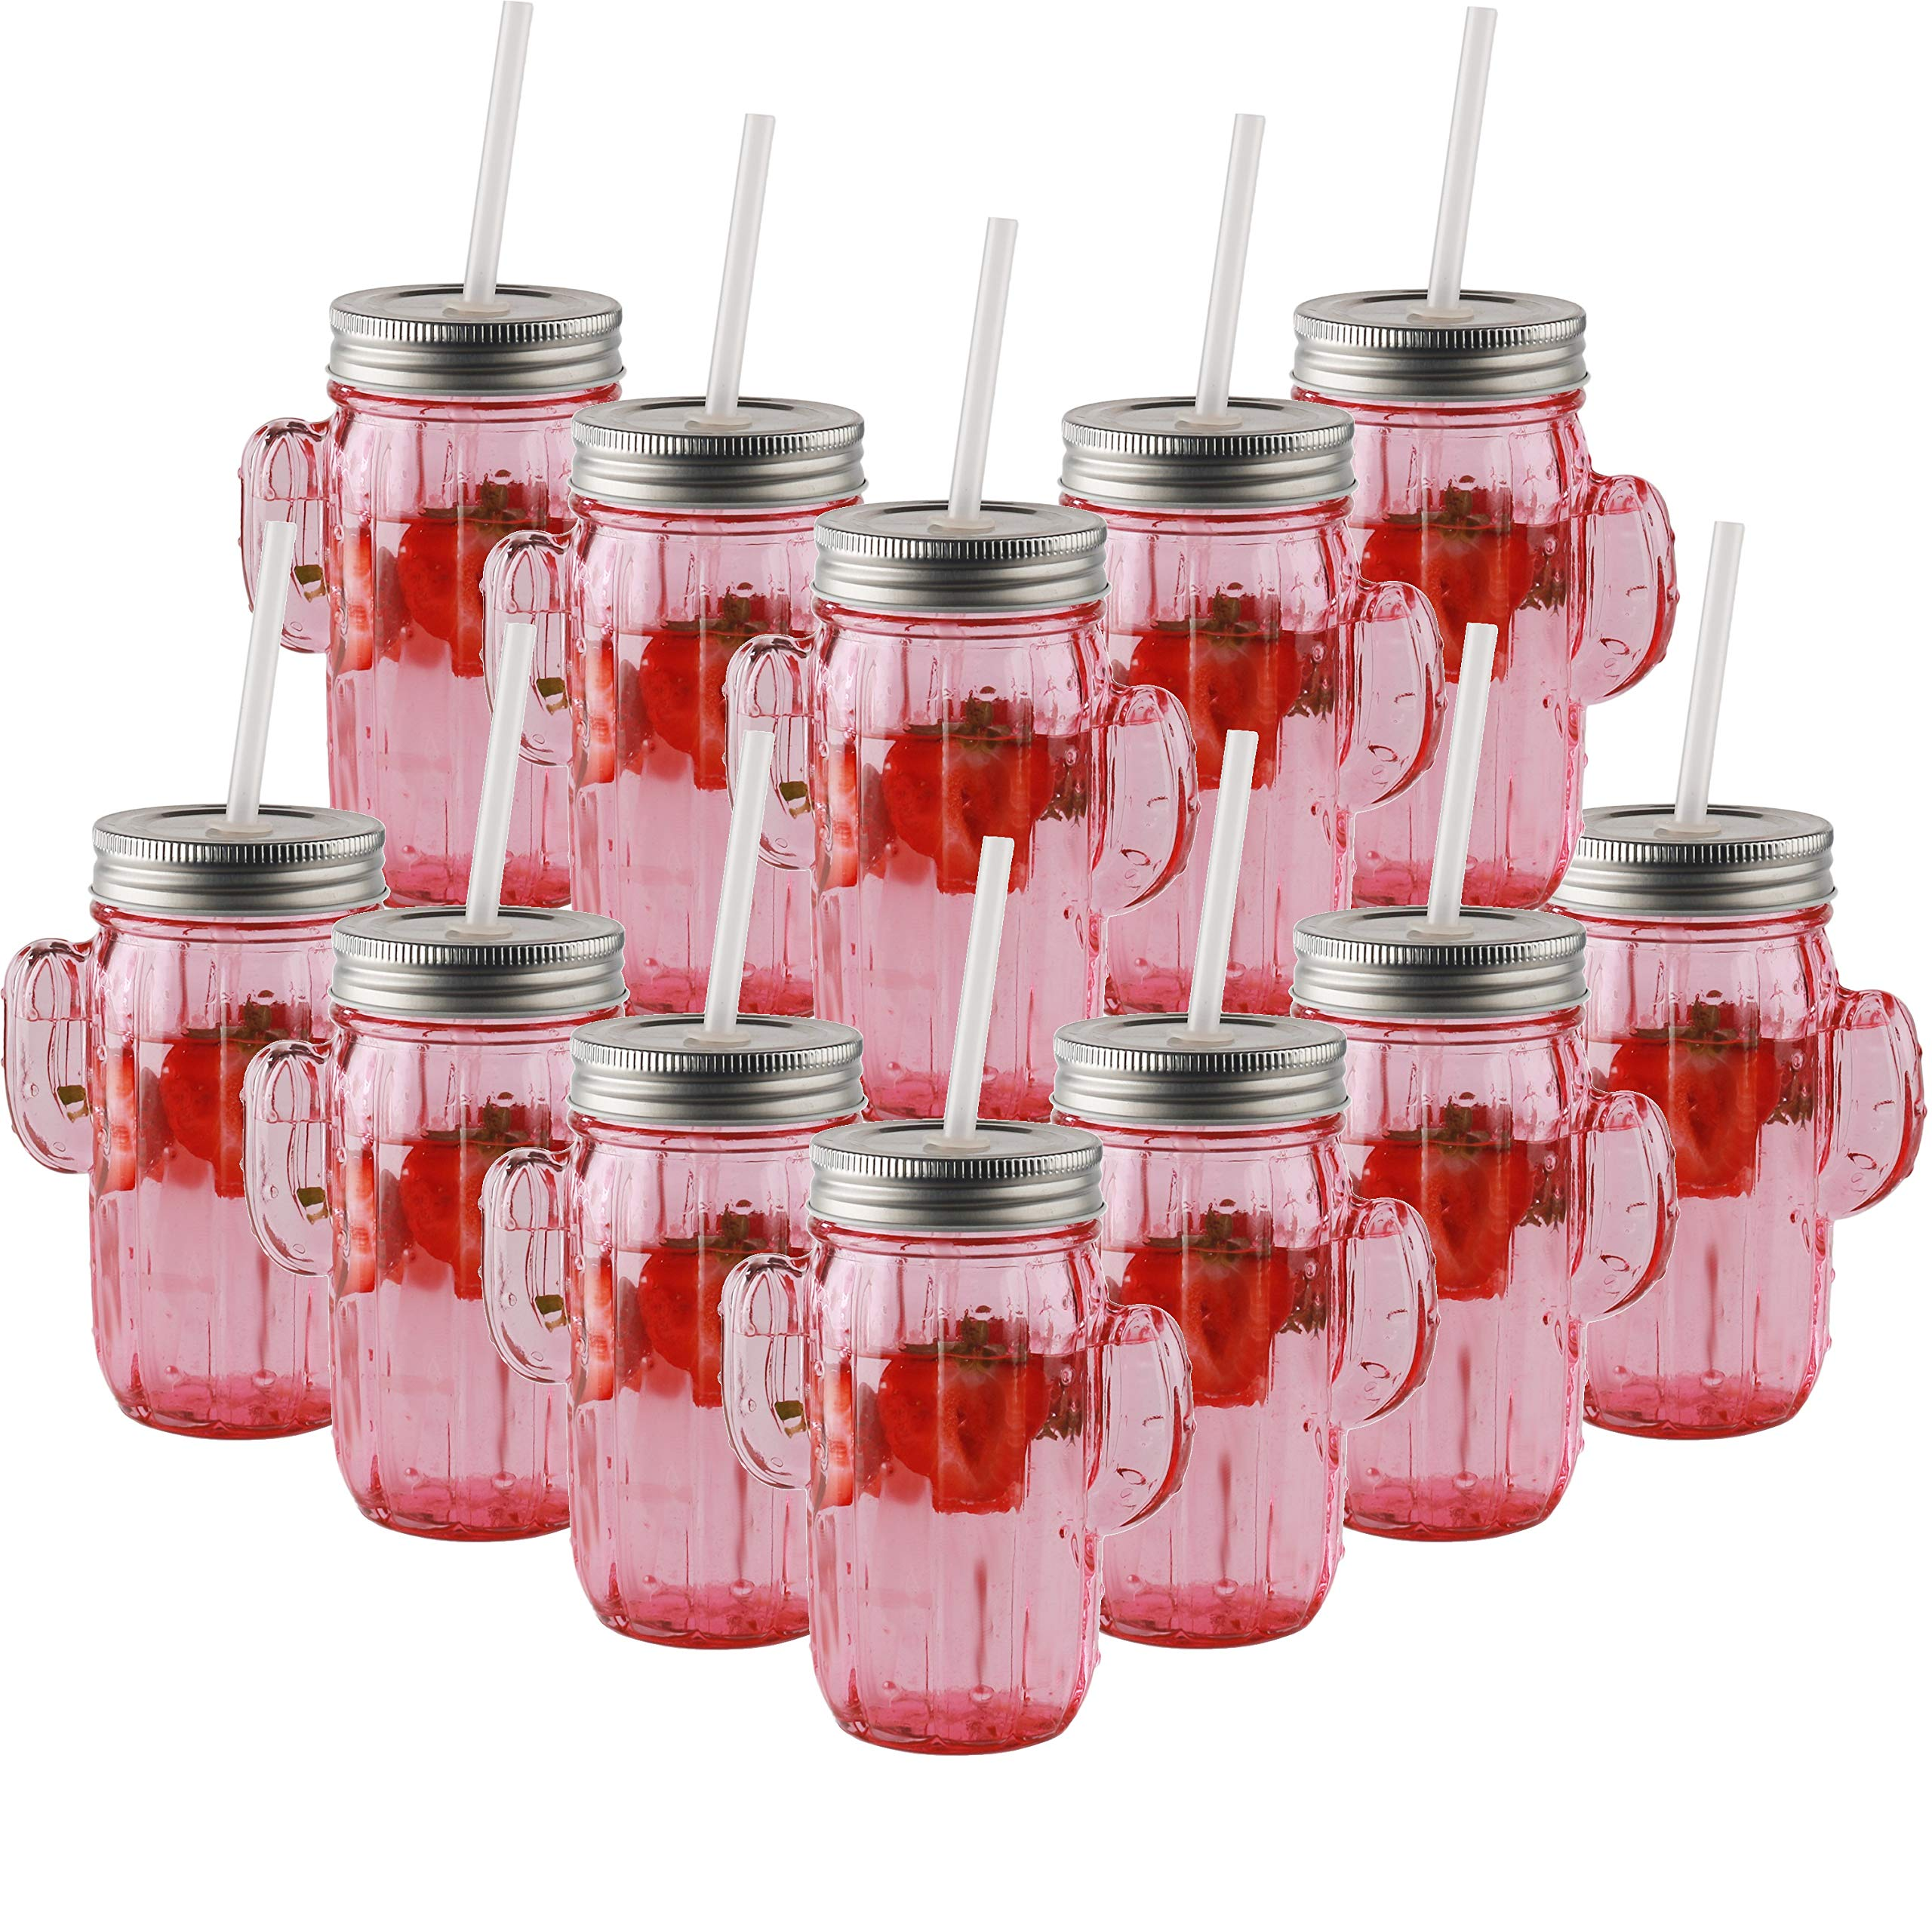 Circleware 06367 Huge Set of 12 Mason Jars Drinking Glasses with Metal Lids and Hard Straws Glassware for Water Beer and Kitchen & Home Decor Bar Dining Beverage Gifts, 15.5 oz, Pink Cactus by Circleware